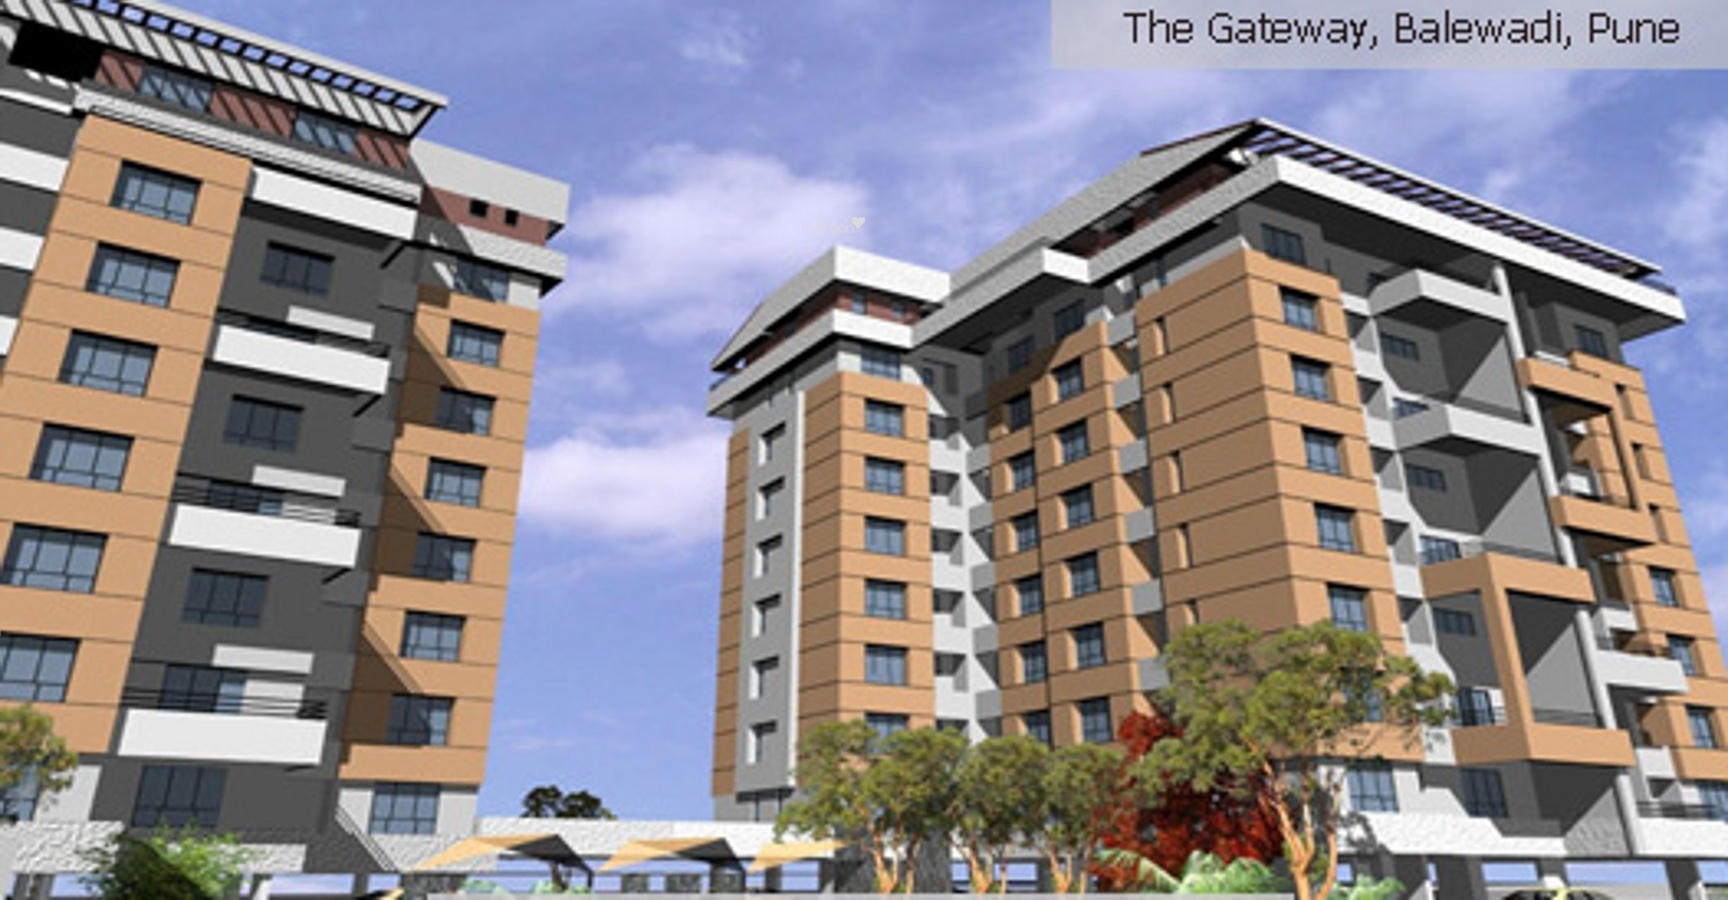 2100 sq ft 4BHK 4BHK+4T (2,100 sq ft) + Study Room Property By Raviraj Real Estate In The Gateway, Balewadi